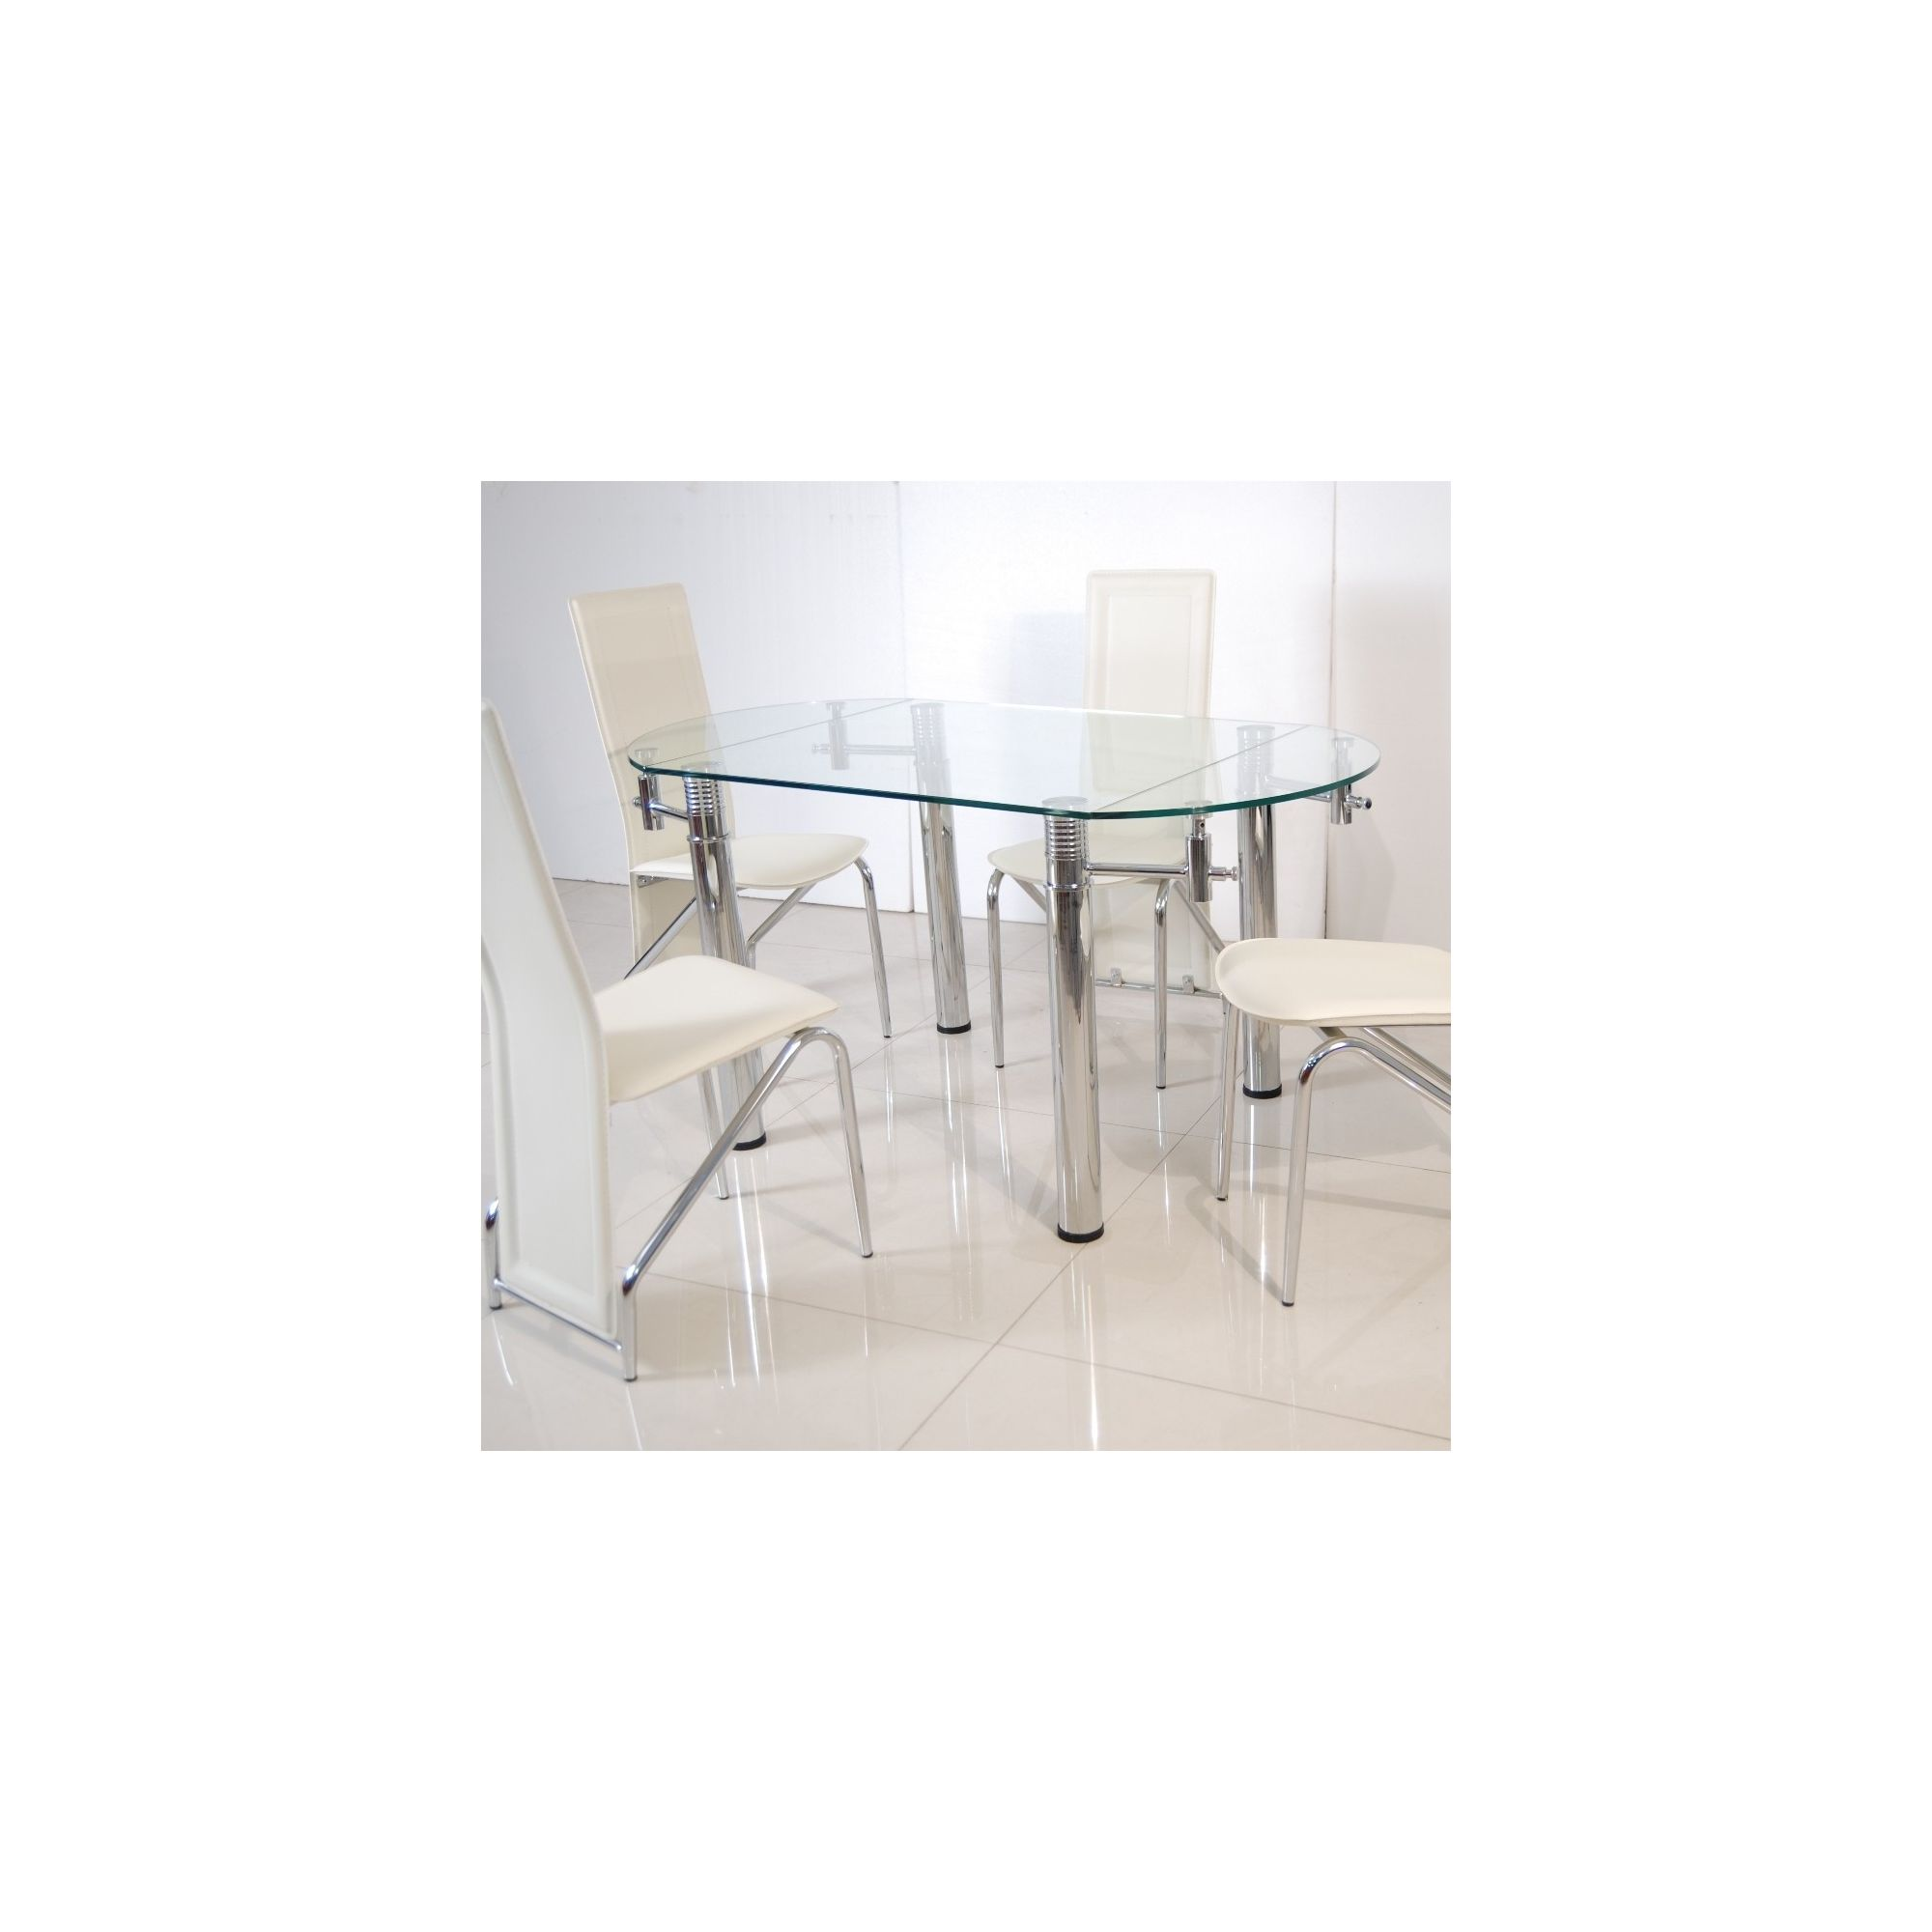 Solway Furniture Oscar Oval 5 Piece Extending Dining Table Set - Cream at Tesco Direct